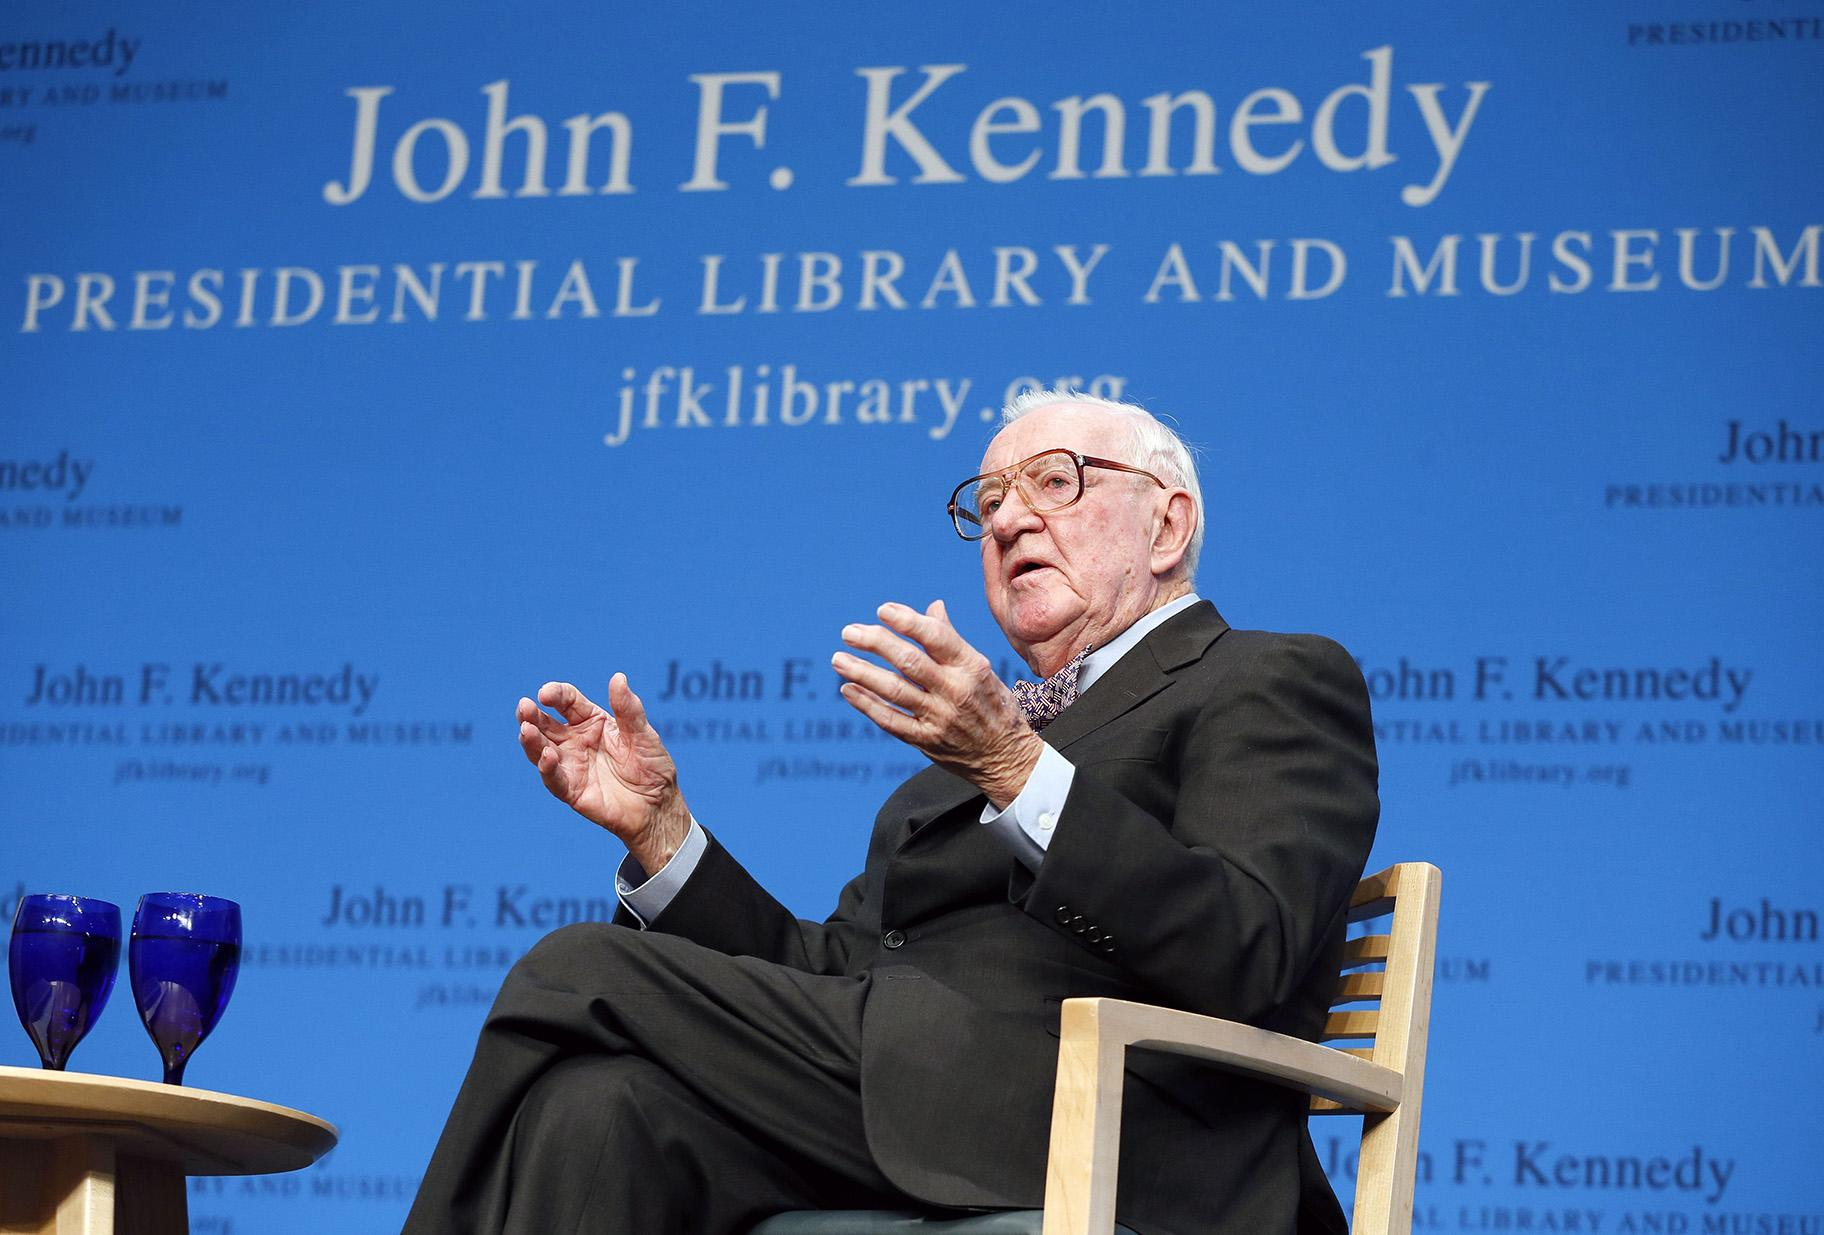 In this May 20, 2013 file photo, retired U.S. Supreme Court Justice John Paul Stevens talks about his views and career during a forum at the John F. Kennedy Library in Boston. (AP Photo / Michael Dwyer, File)